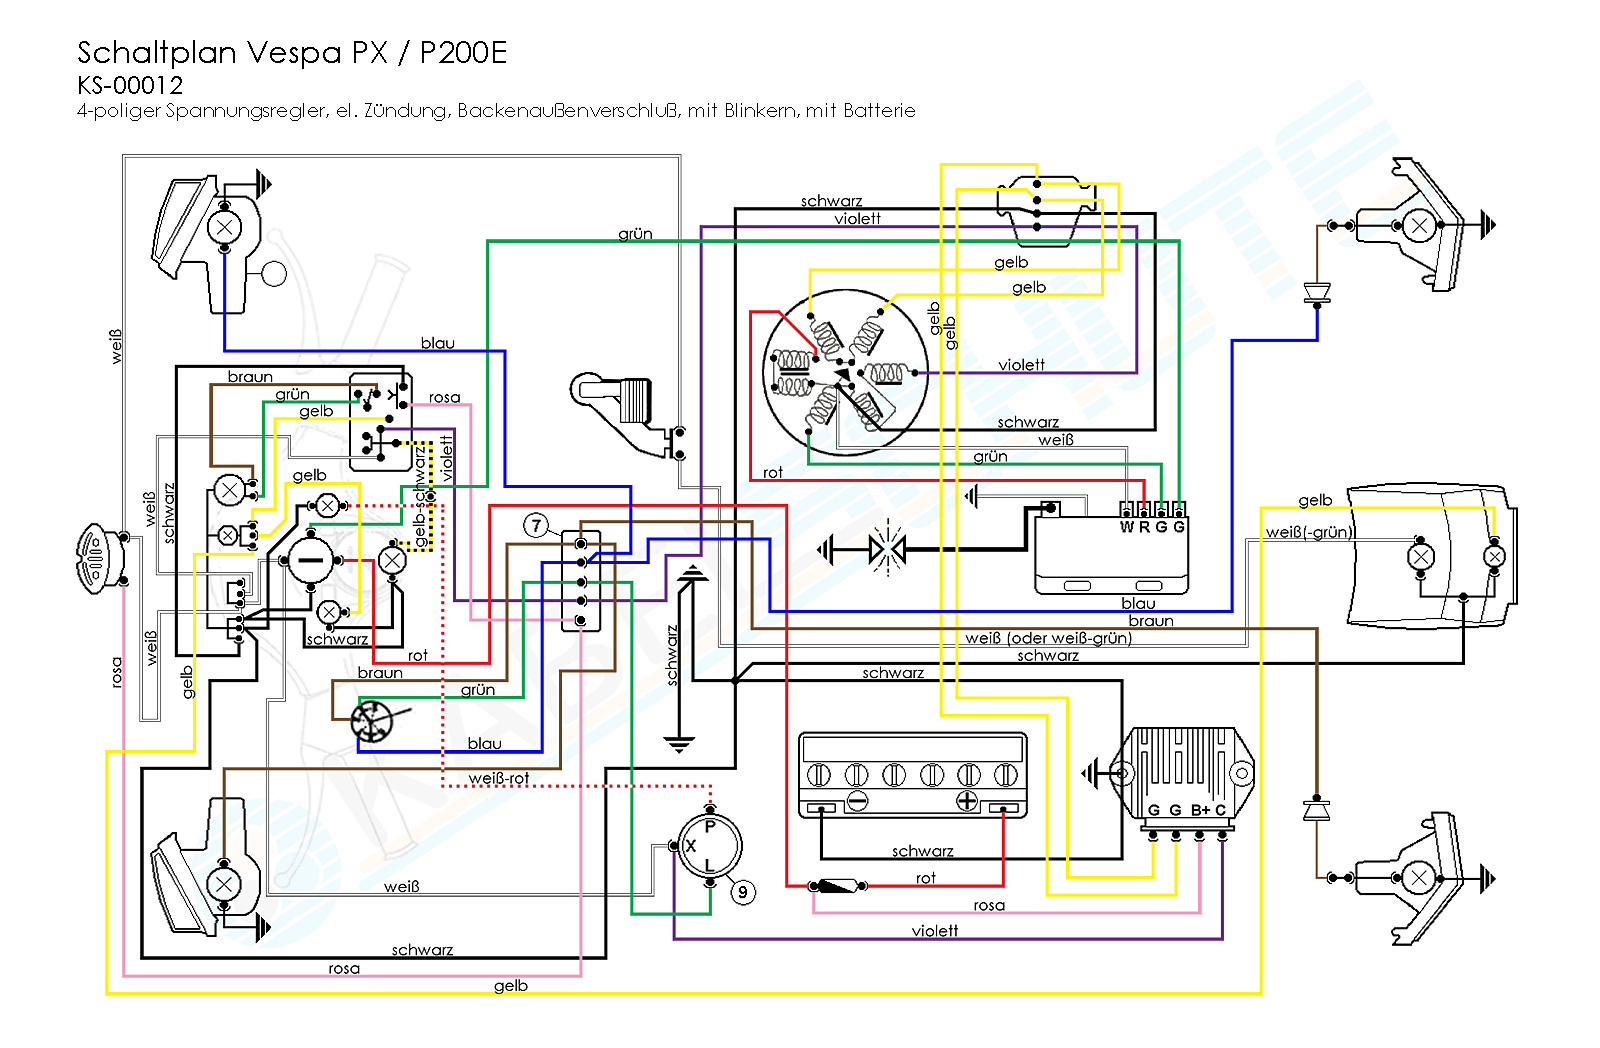 KS 00012_Schaltplan VSX1T_Vespa_PX vespa px wiring diagram vespa px 150 wiring diagram at bakdesigns.co